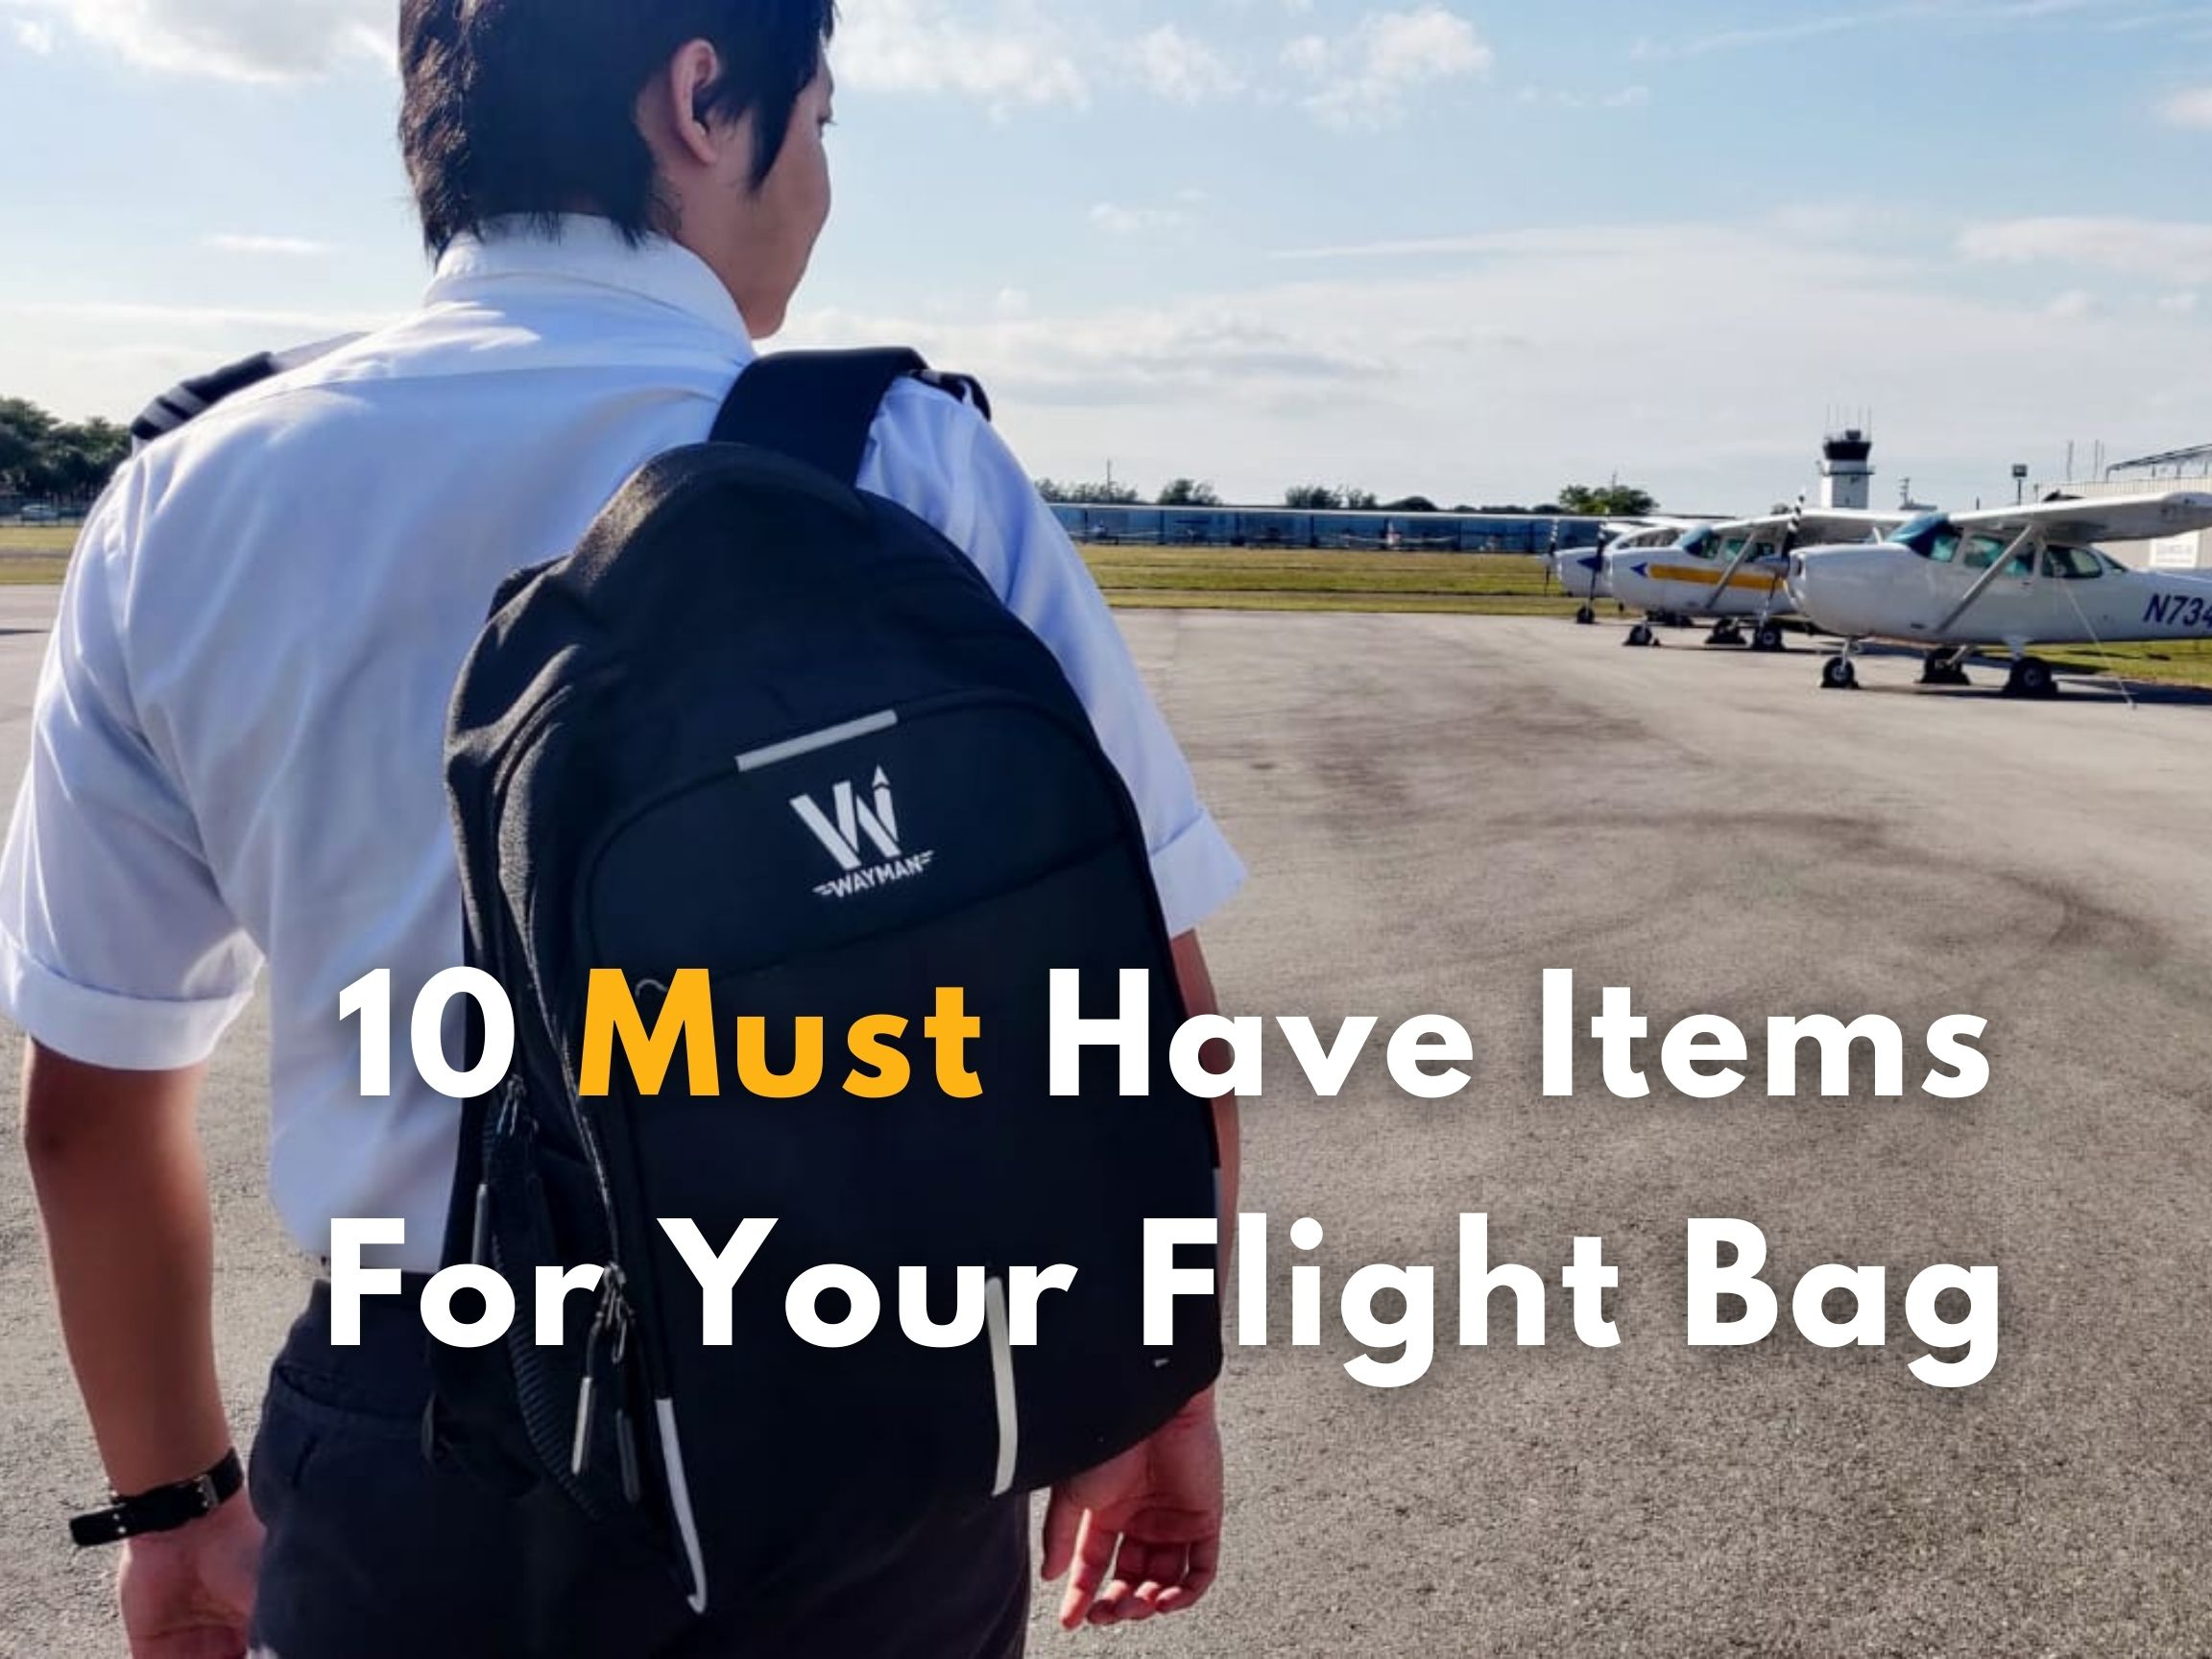 10 Must Have Items For Your Flight Bag